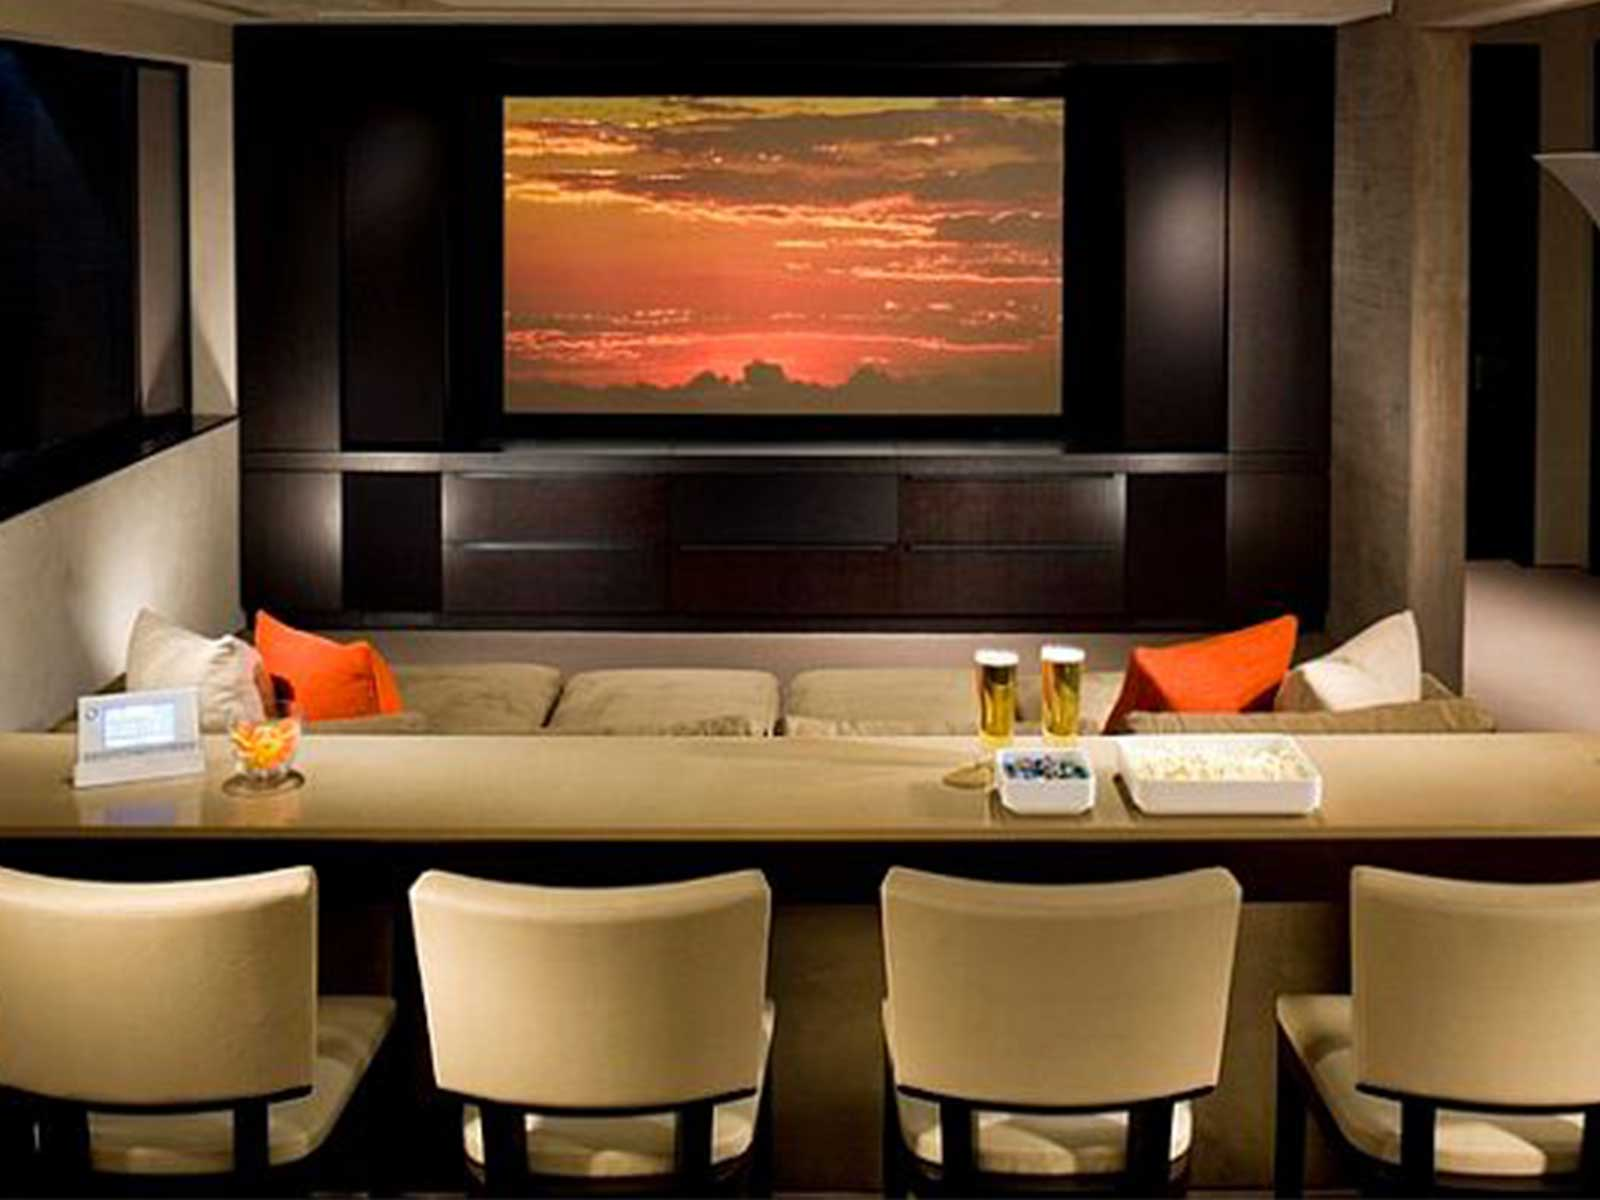 Fantastic Design Of The White Wall And Big Screen Of The Home Theater Design With Some Fabric Chairs